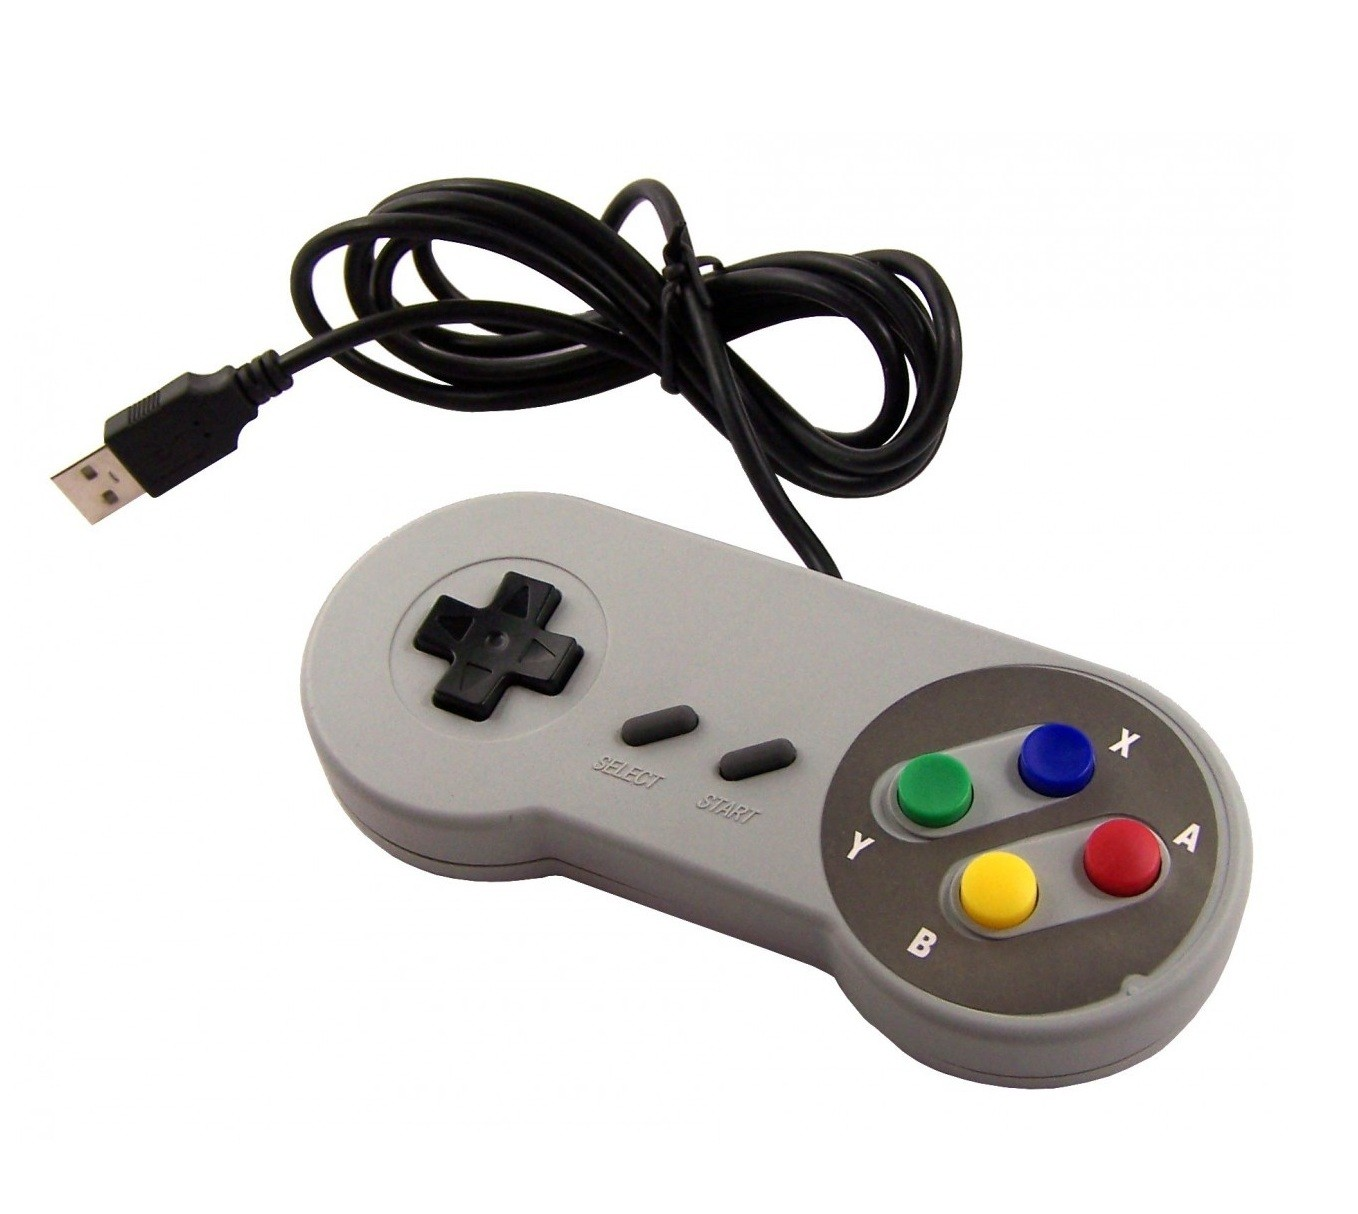 Snes Super Nintendo USB Controller Classic Style Grey Gamepad Joystick For PC / MAC / Laptop / Tablet / Raspberry Pi